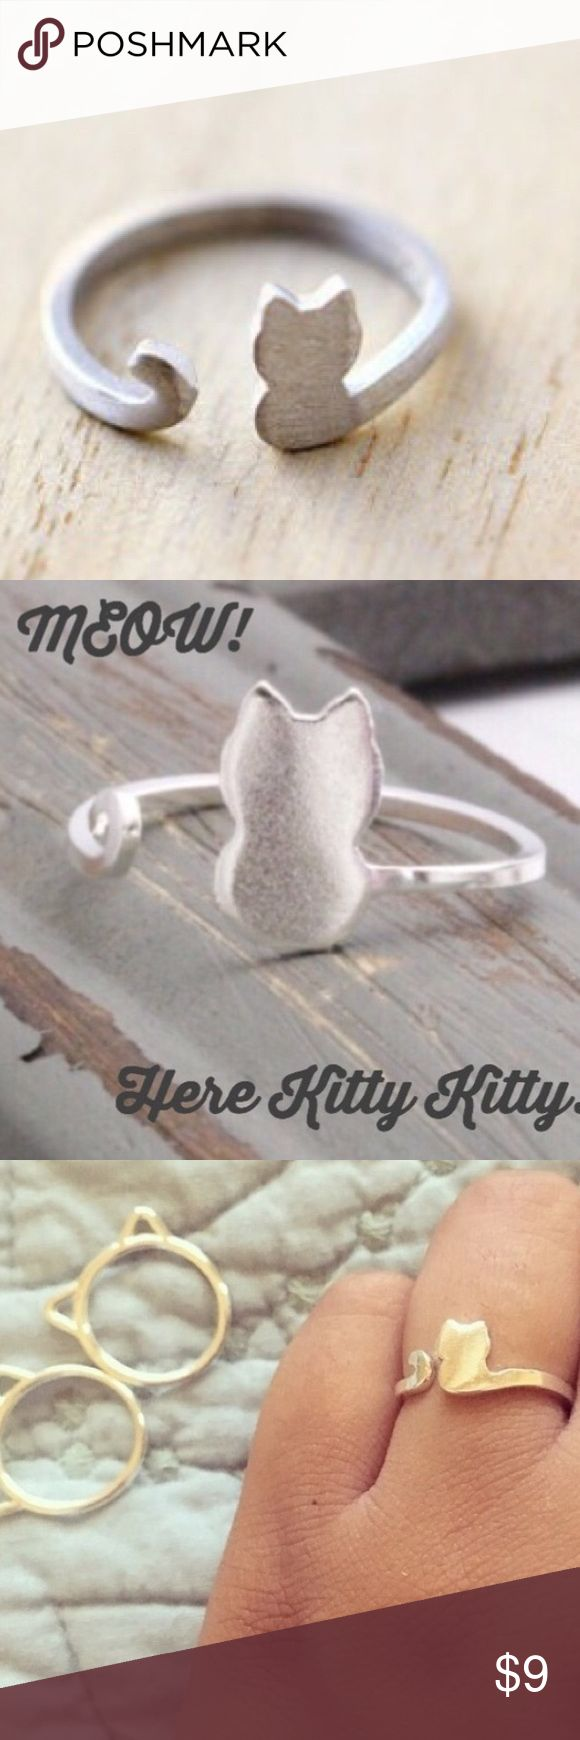 """Kitty Kat Ring So adorable and perfect for any cat lover! Size is adjustable. Material: Zinc Alloy Size: Adjustable  Color: Silver Bundle with the """"Kitty Rings"""" for a cute cat accessories collection! Jewelry Rings"""